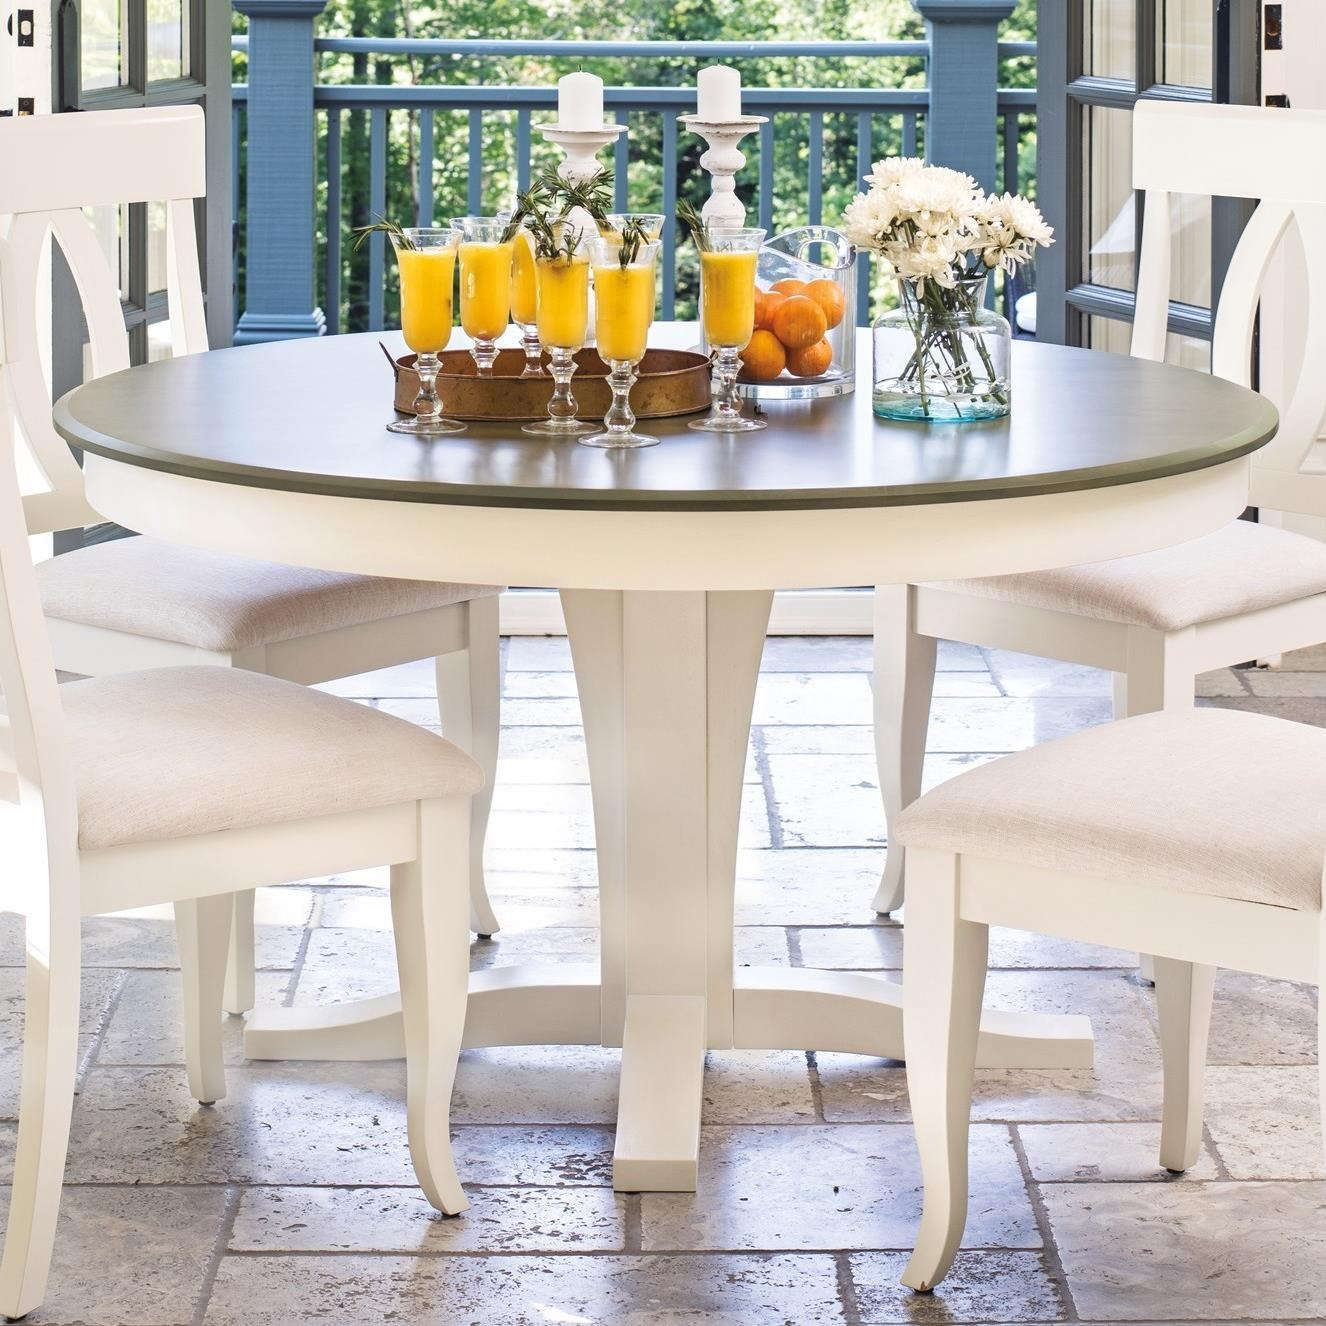 Canadel Gourmet - Custom Dining Customizable Round Table ...